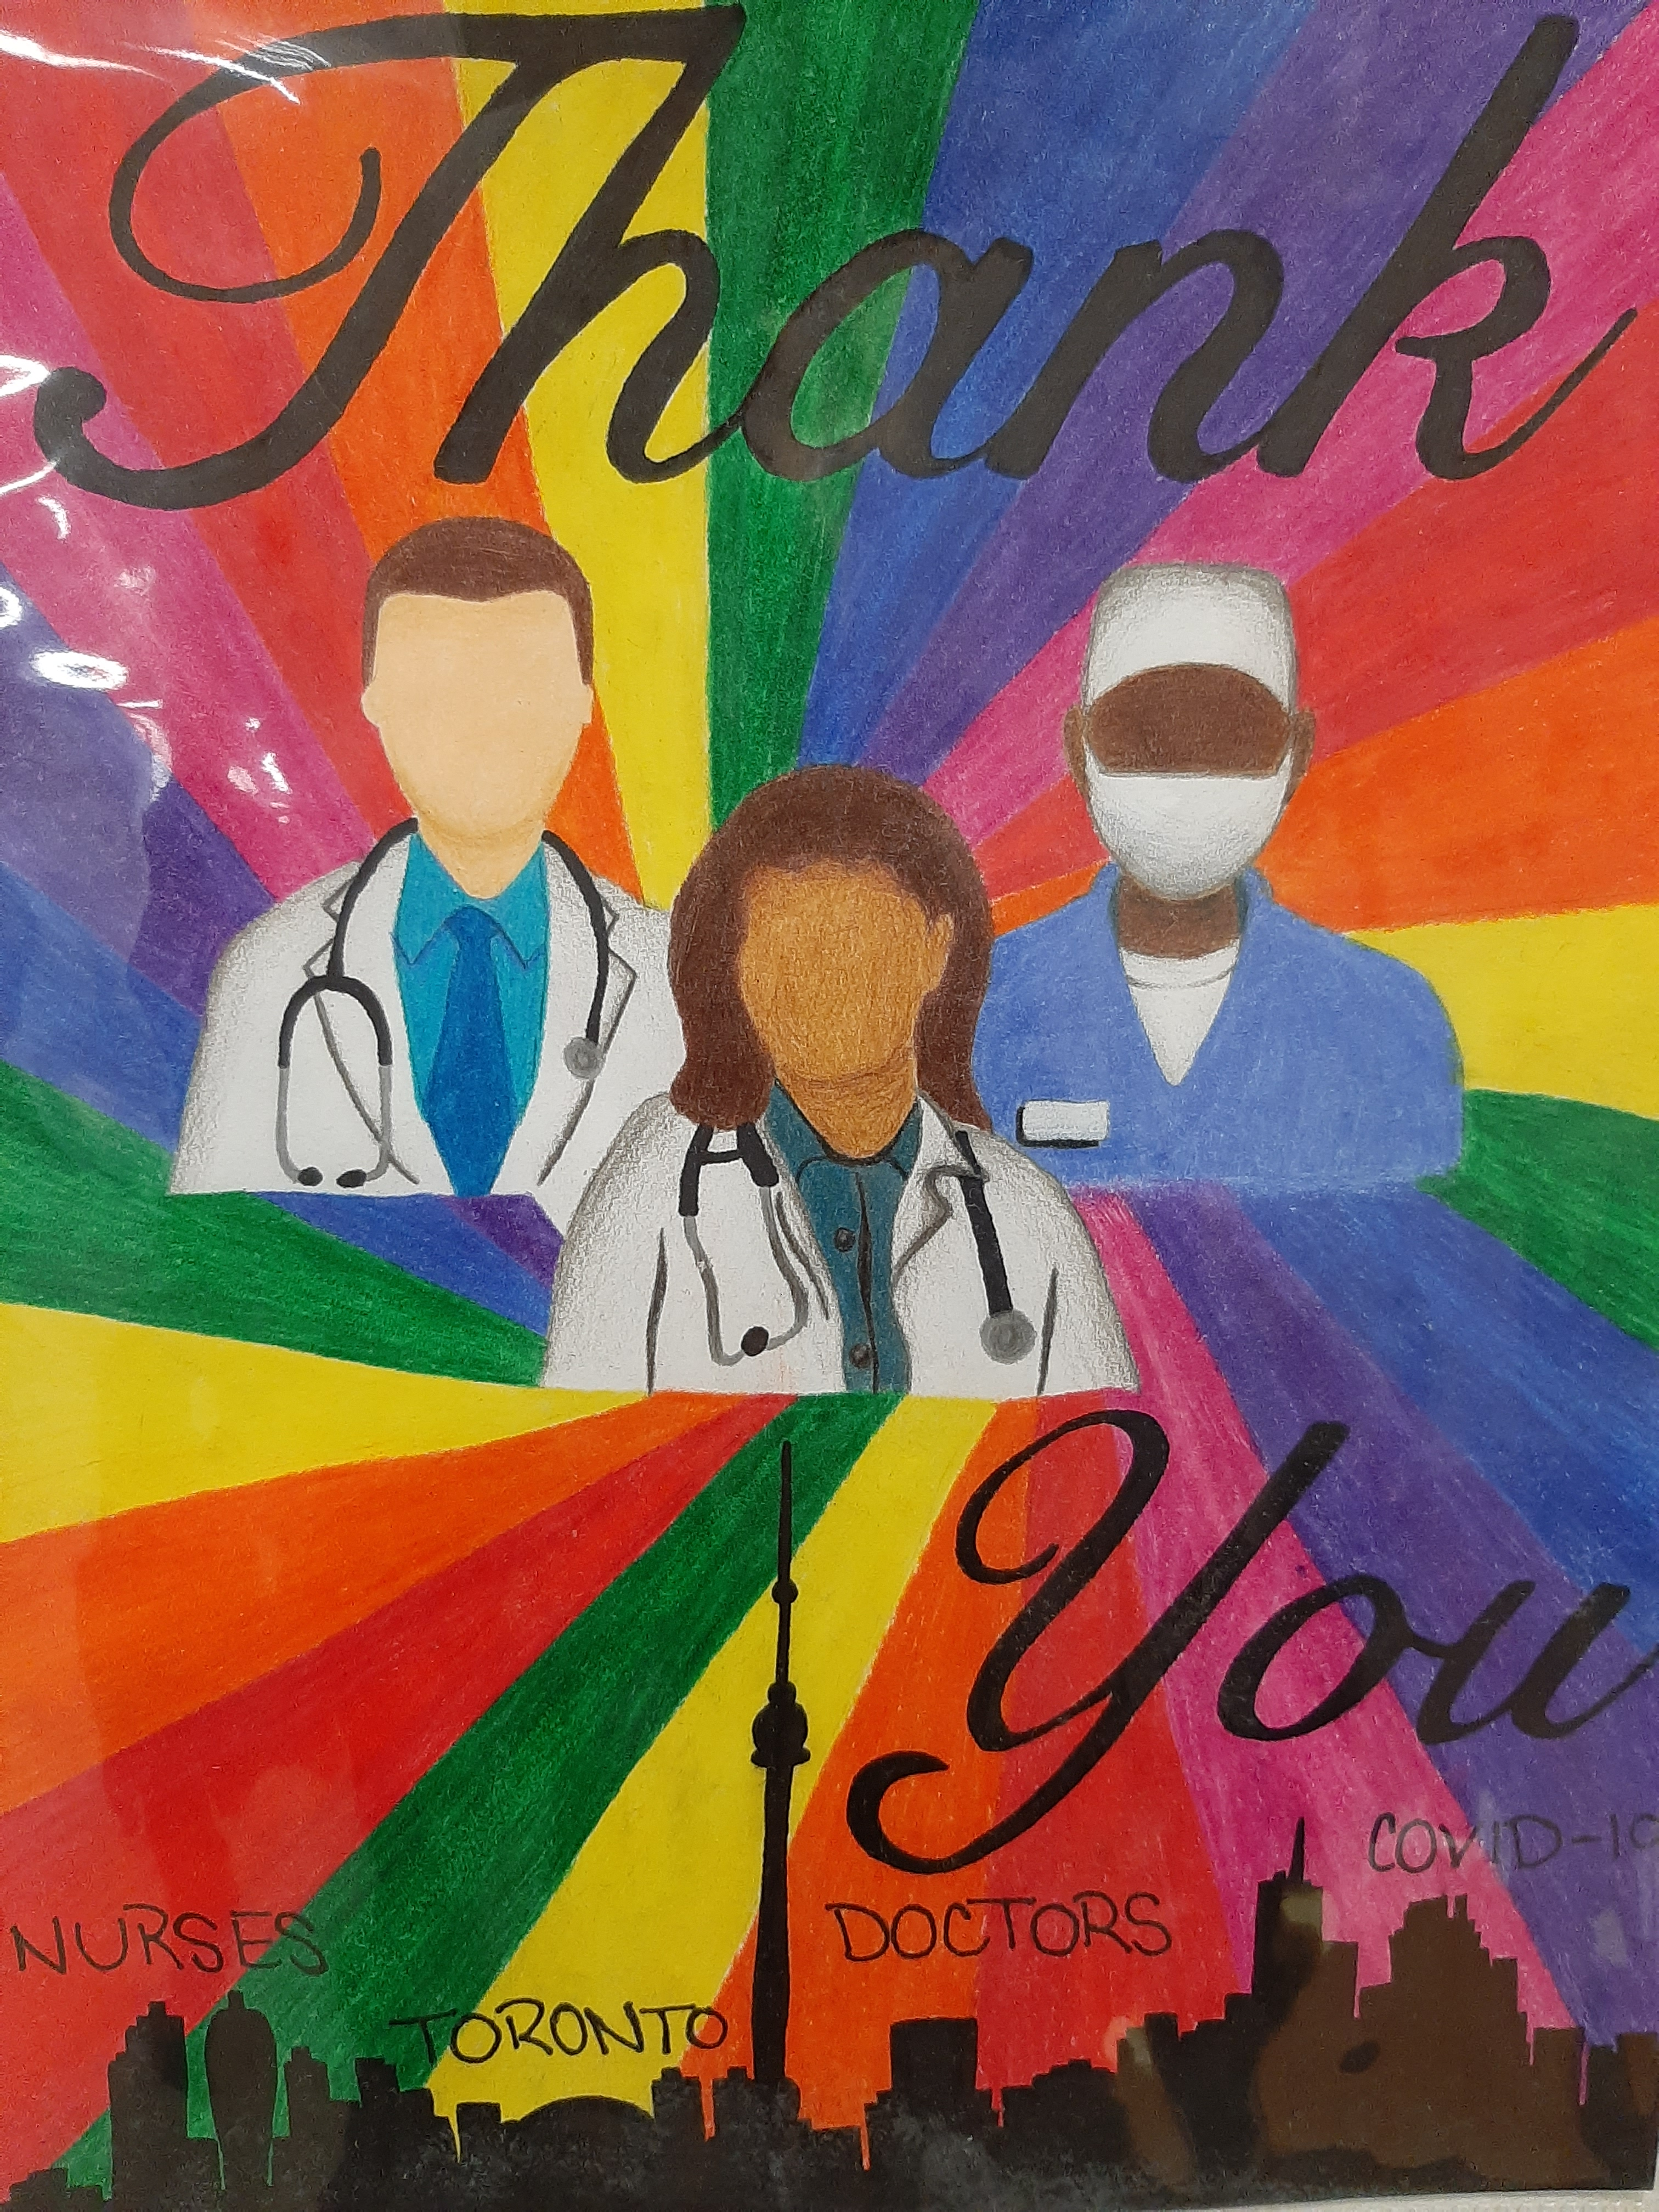 Illustration with bright rainbow like colours behind three health care workers. Large text says Thank You. at the bottom is a silhouette Toronto skyline with the words, Nurses, Toronto, Doctors COVID-19